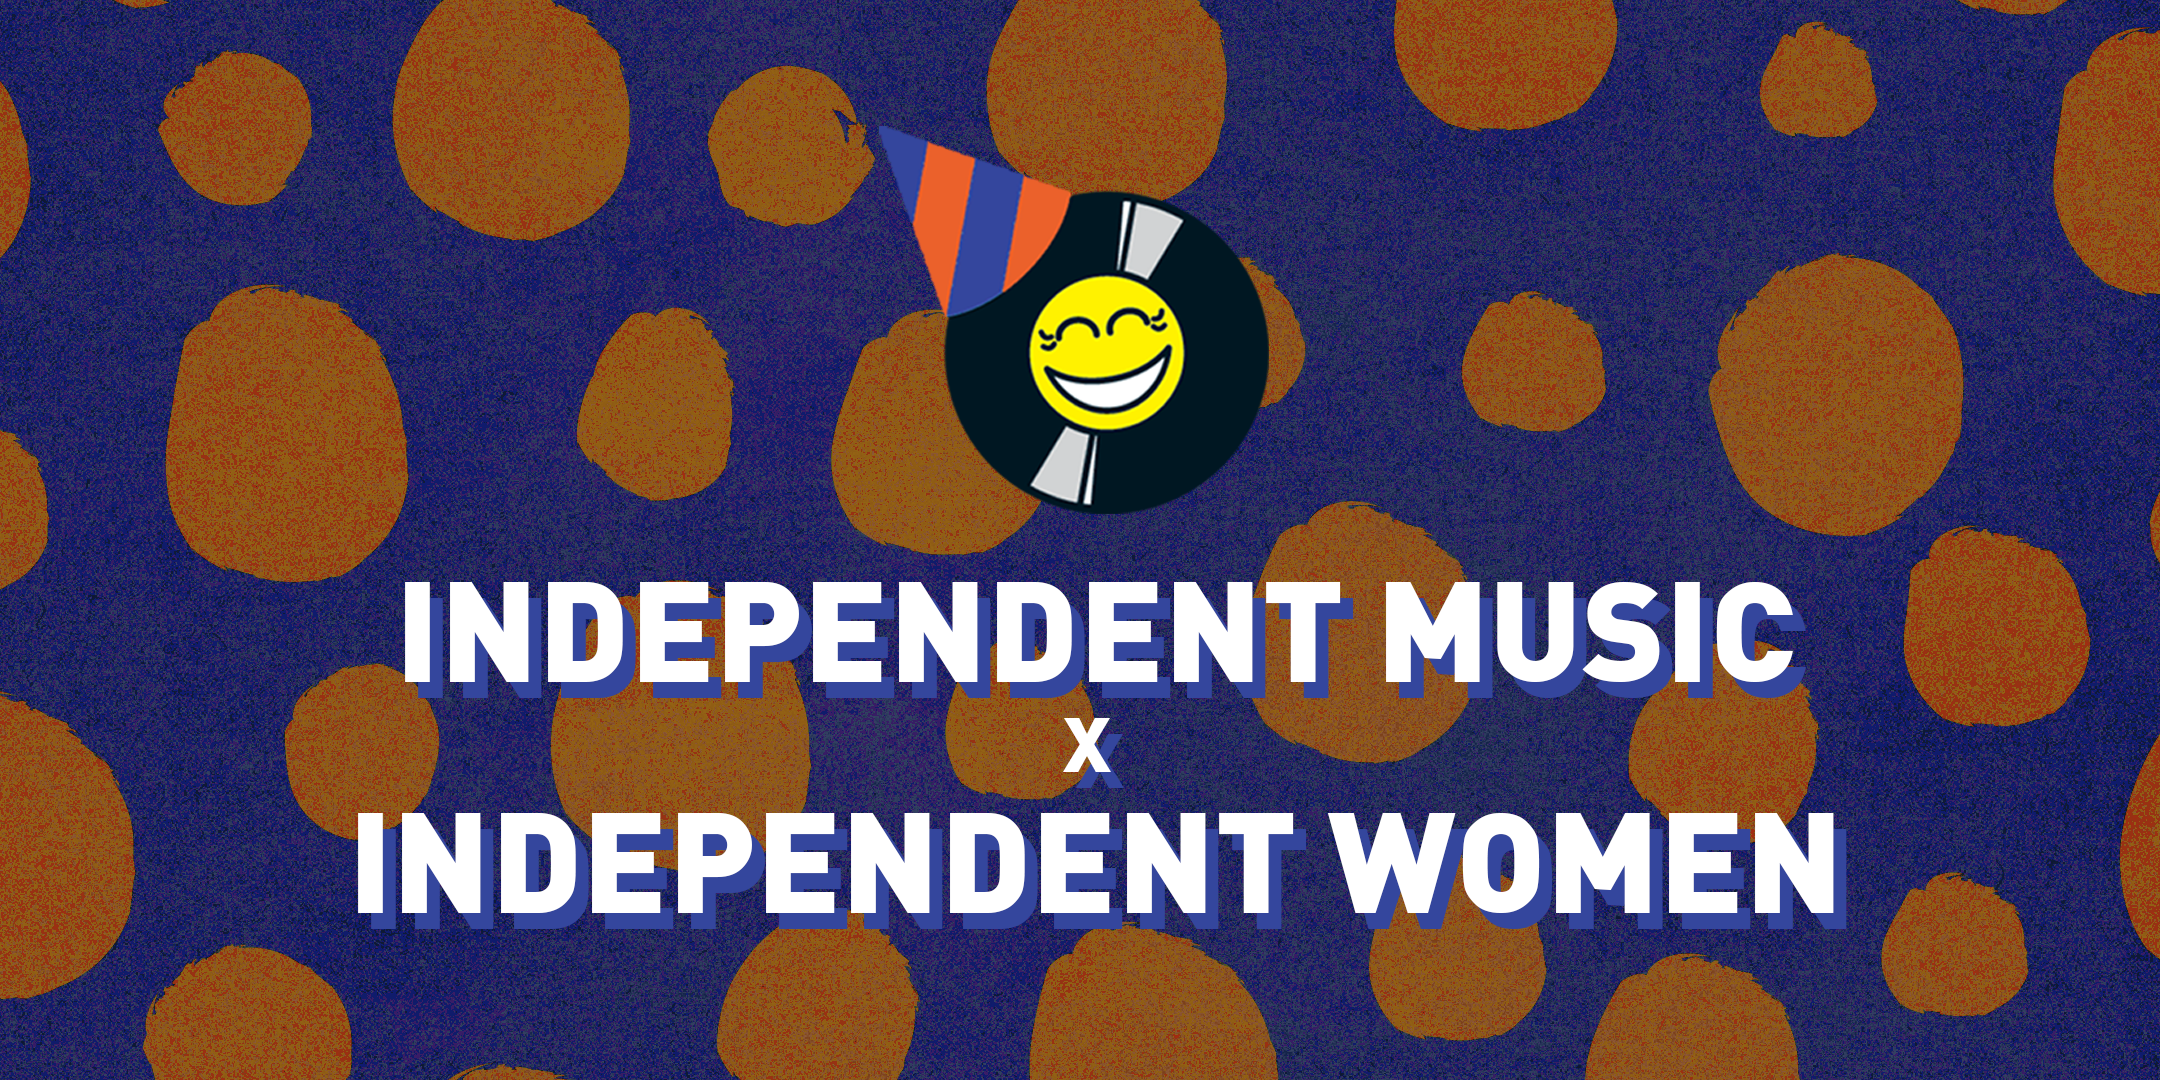 INDEPENDENT MUSIC x INDEPENDENT WOMEN